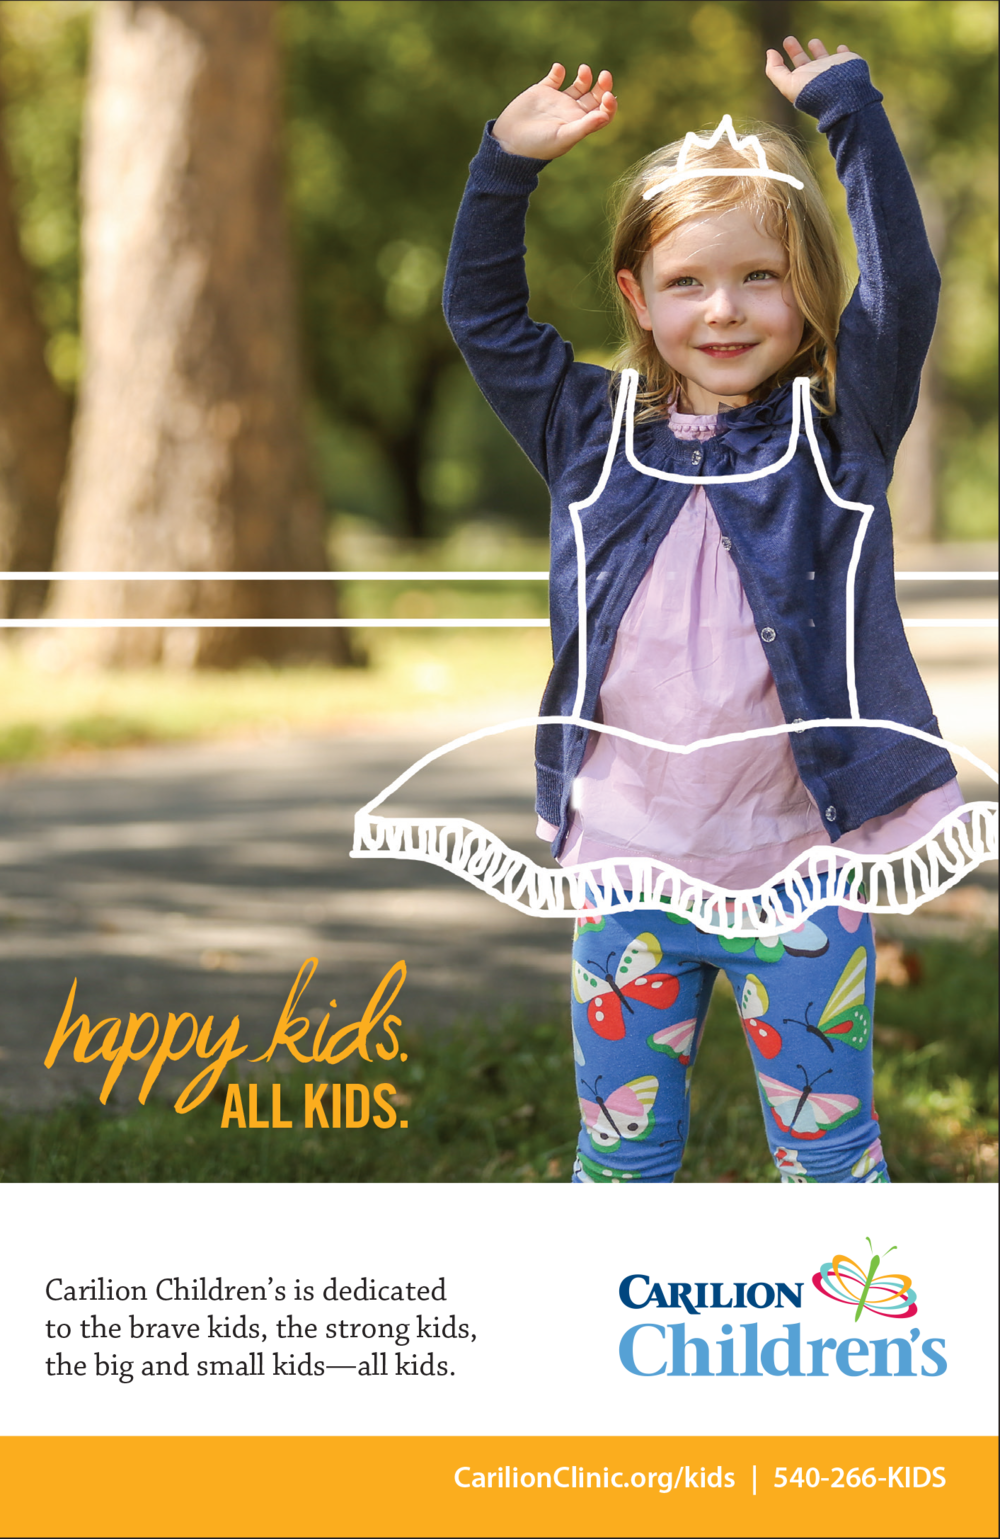 C66749 TA Carilion Childrens_Elise Happy Kids_4 75x7 25.png